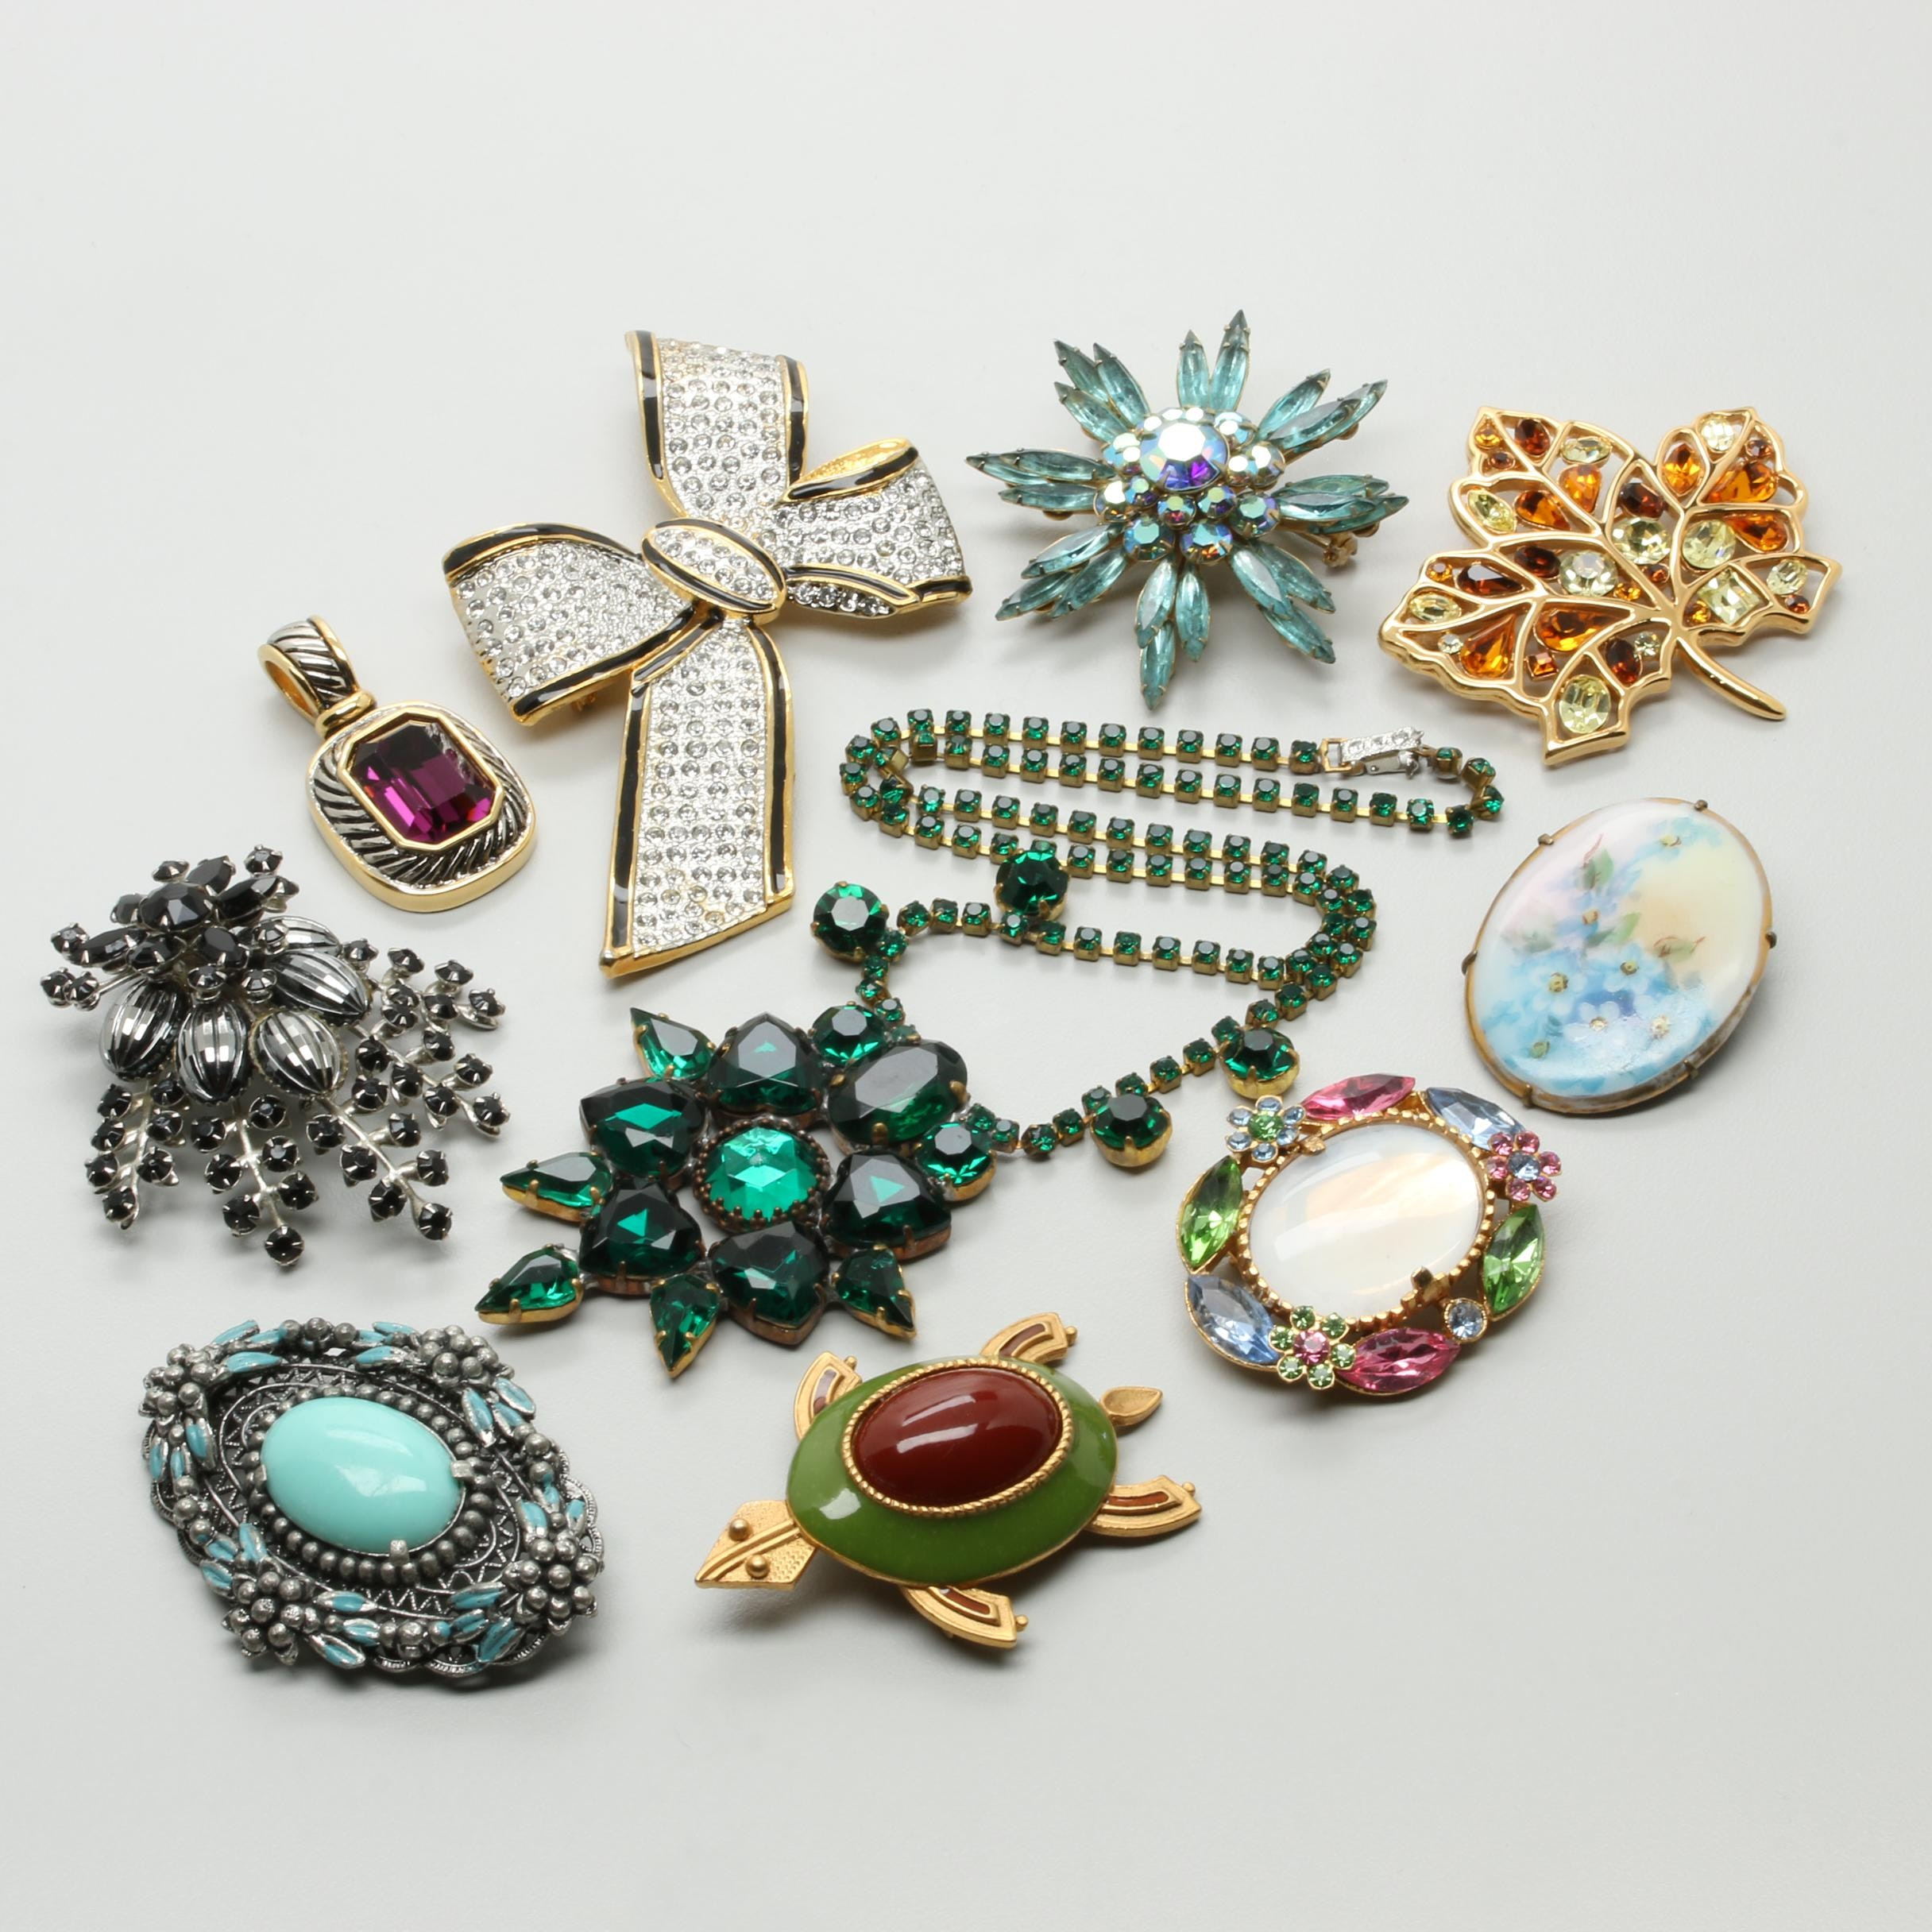 Vintage Brooch and Necklace Assortment with Foilback and Enamel